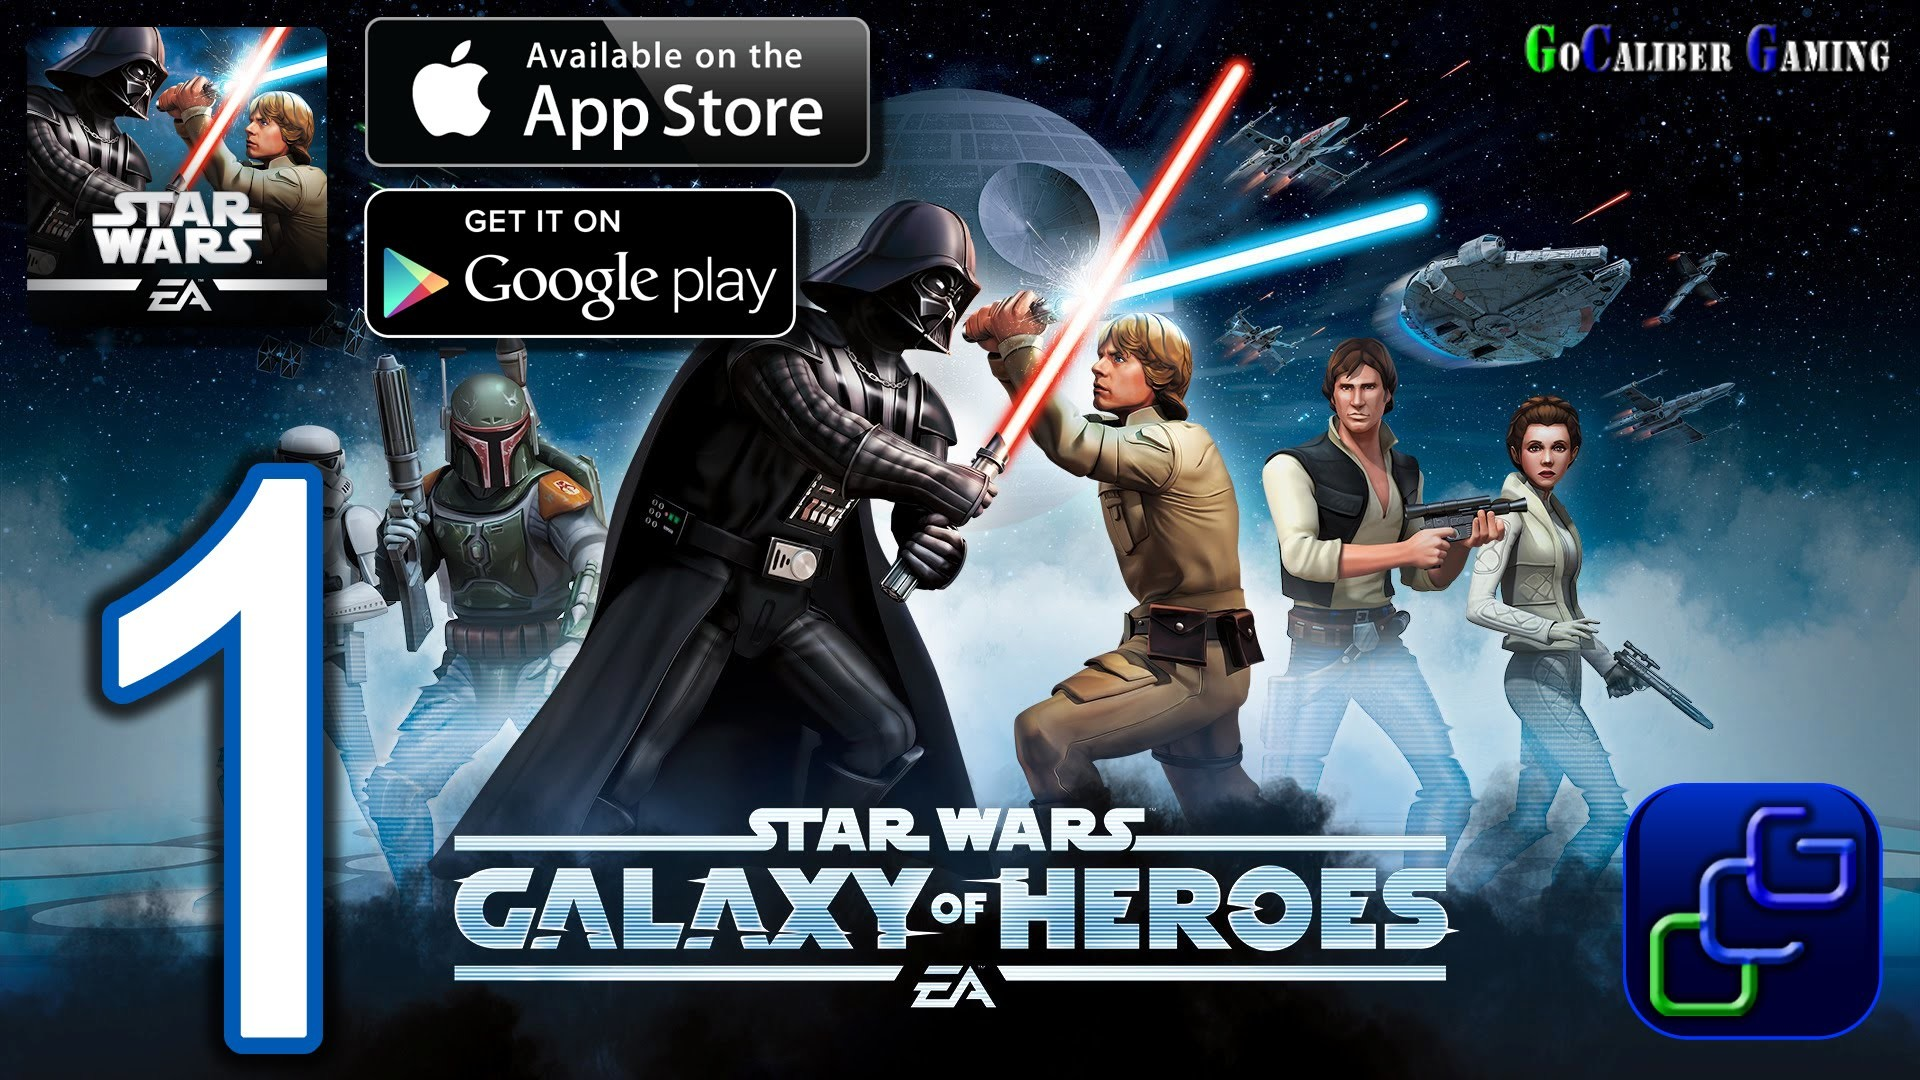 Star Wars Live Wallpaper Android (70+ Images